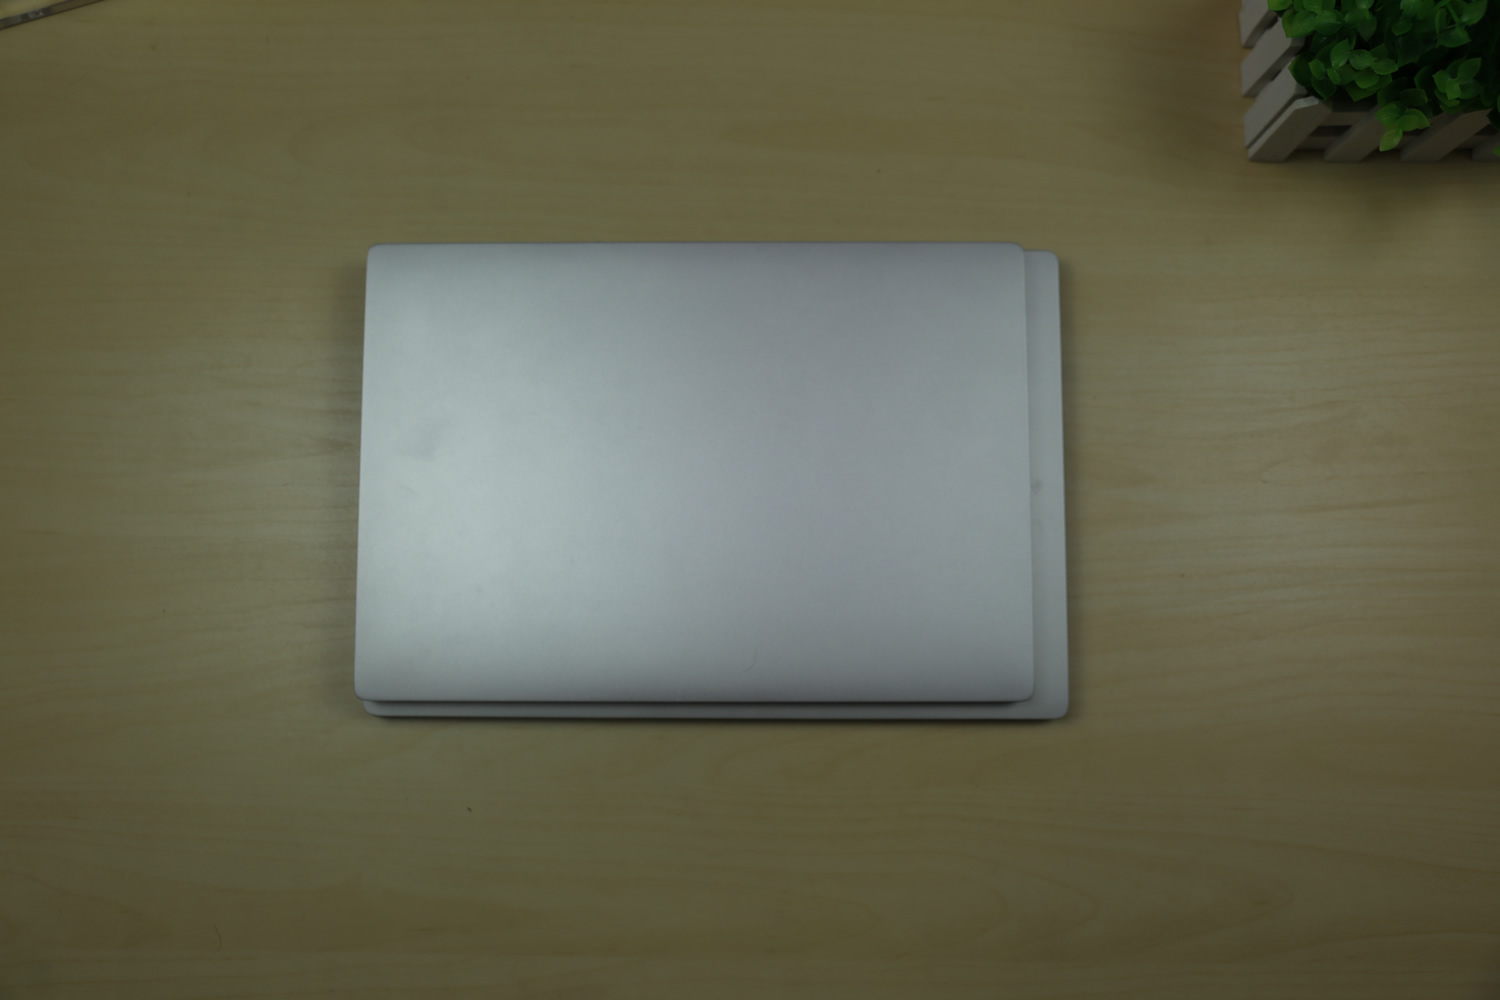 xiaomi-notebook-sravnen-2